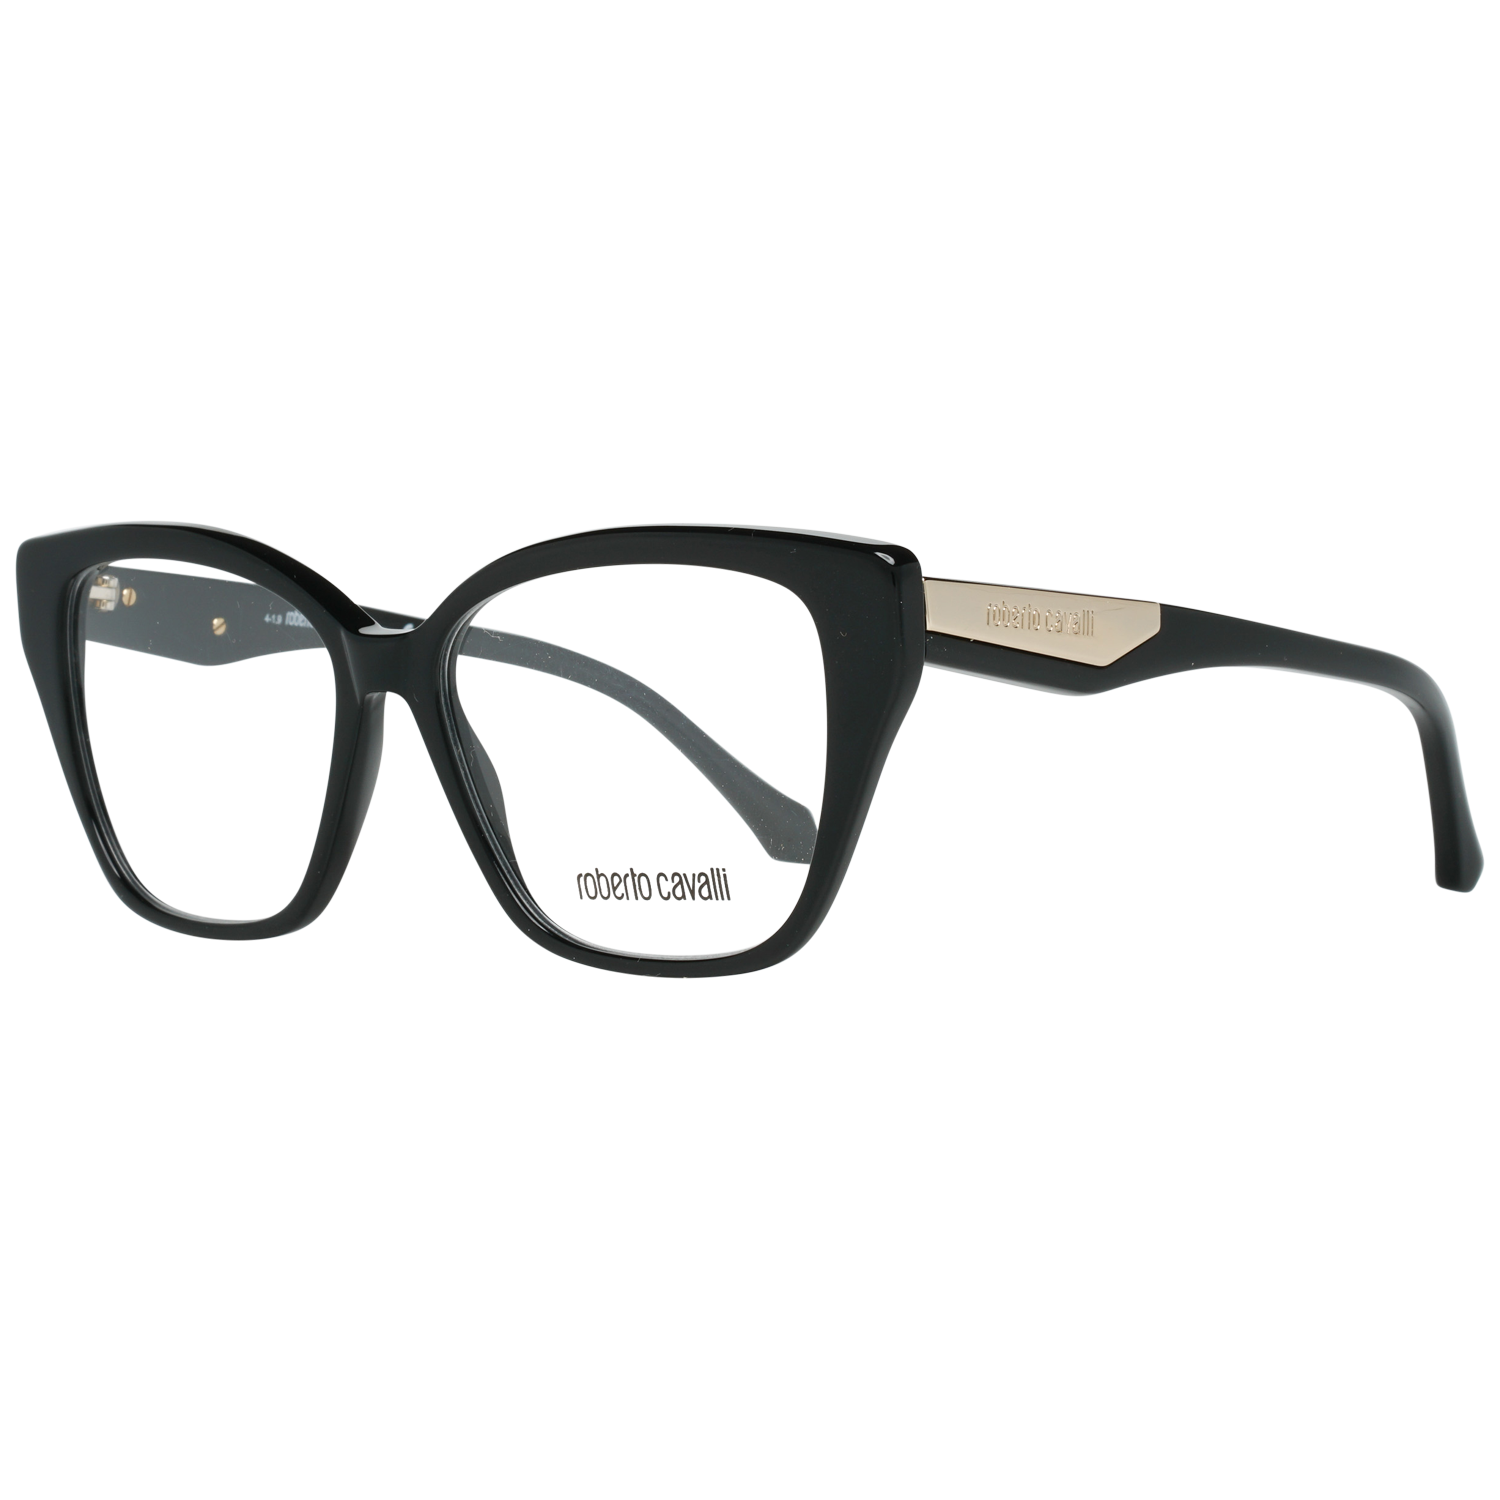 Roberto Cavalli Optical Frame RC5083 001 53 Women Black